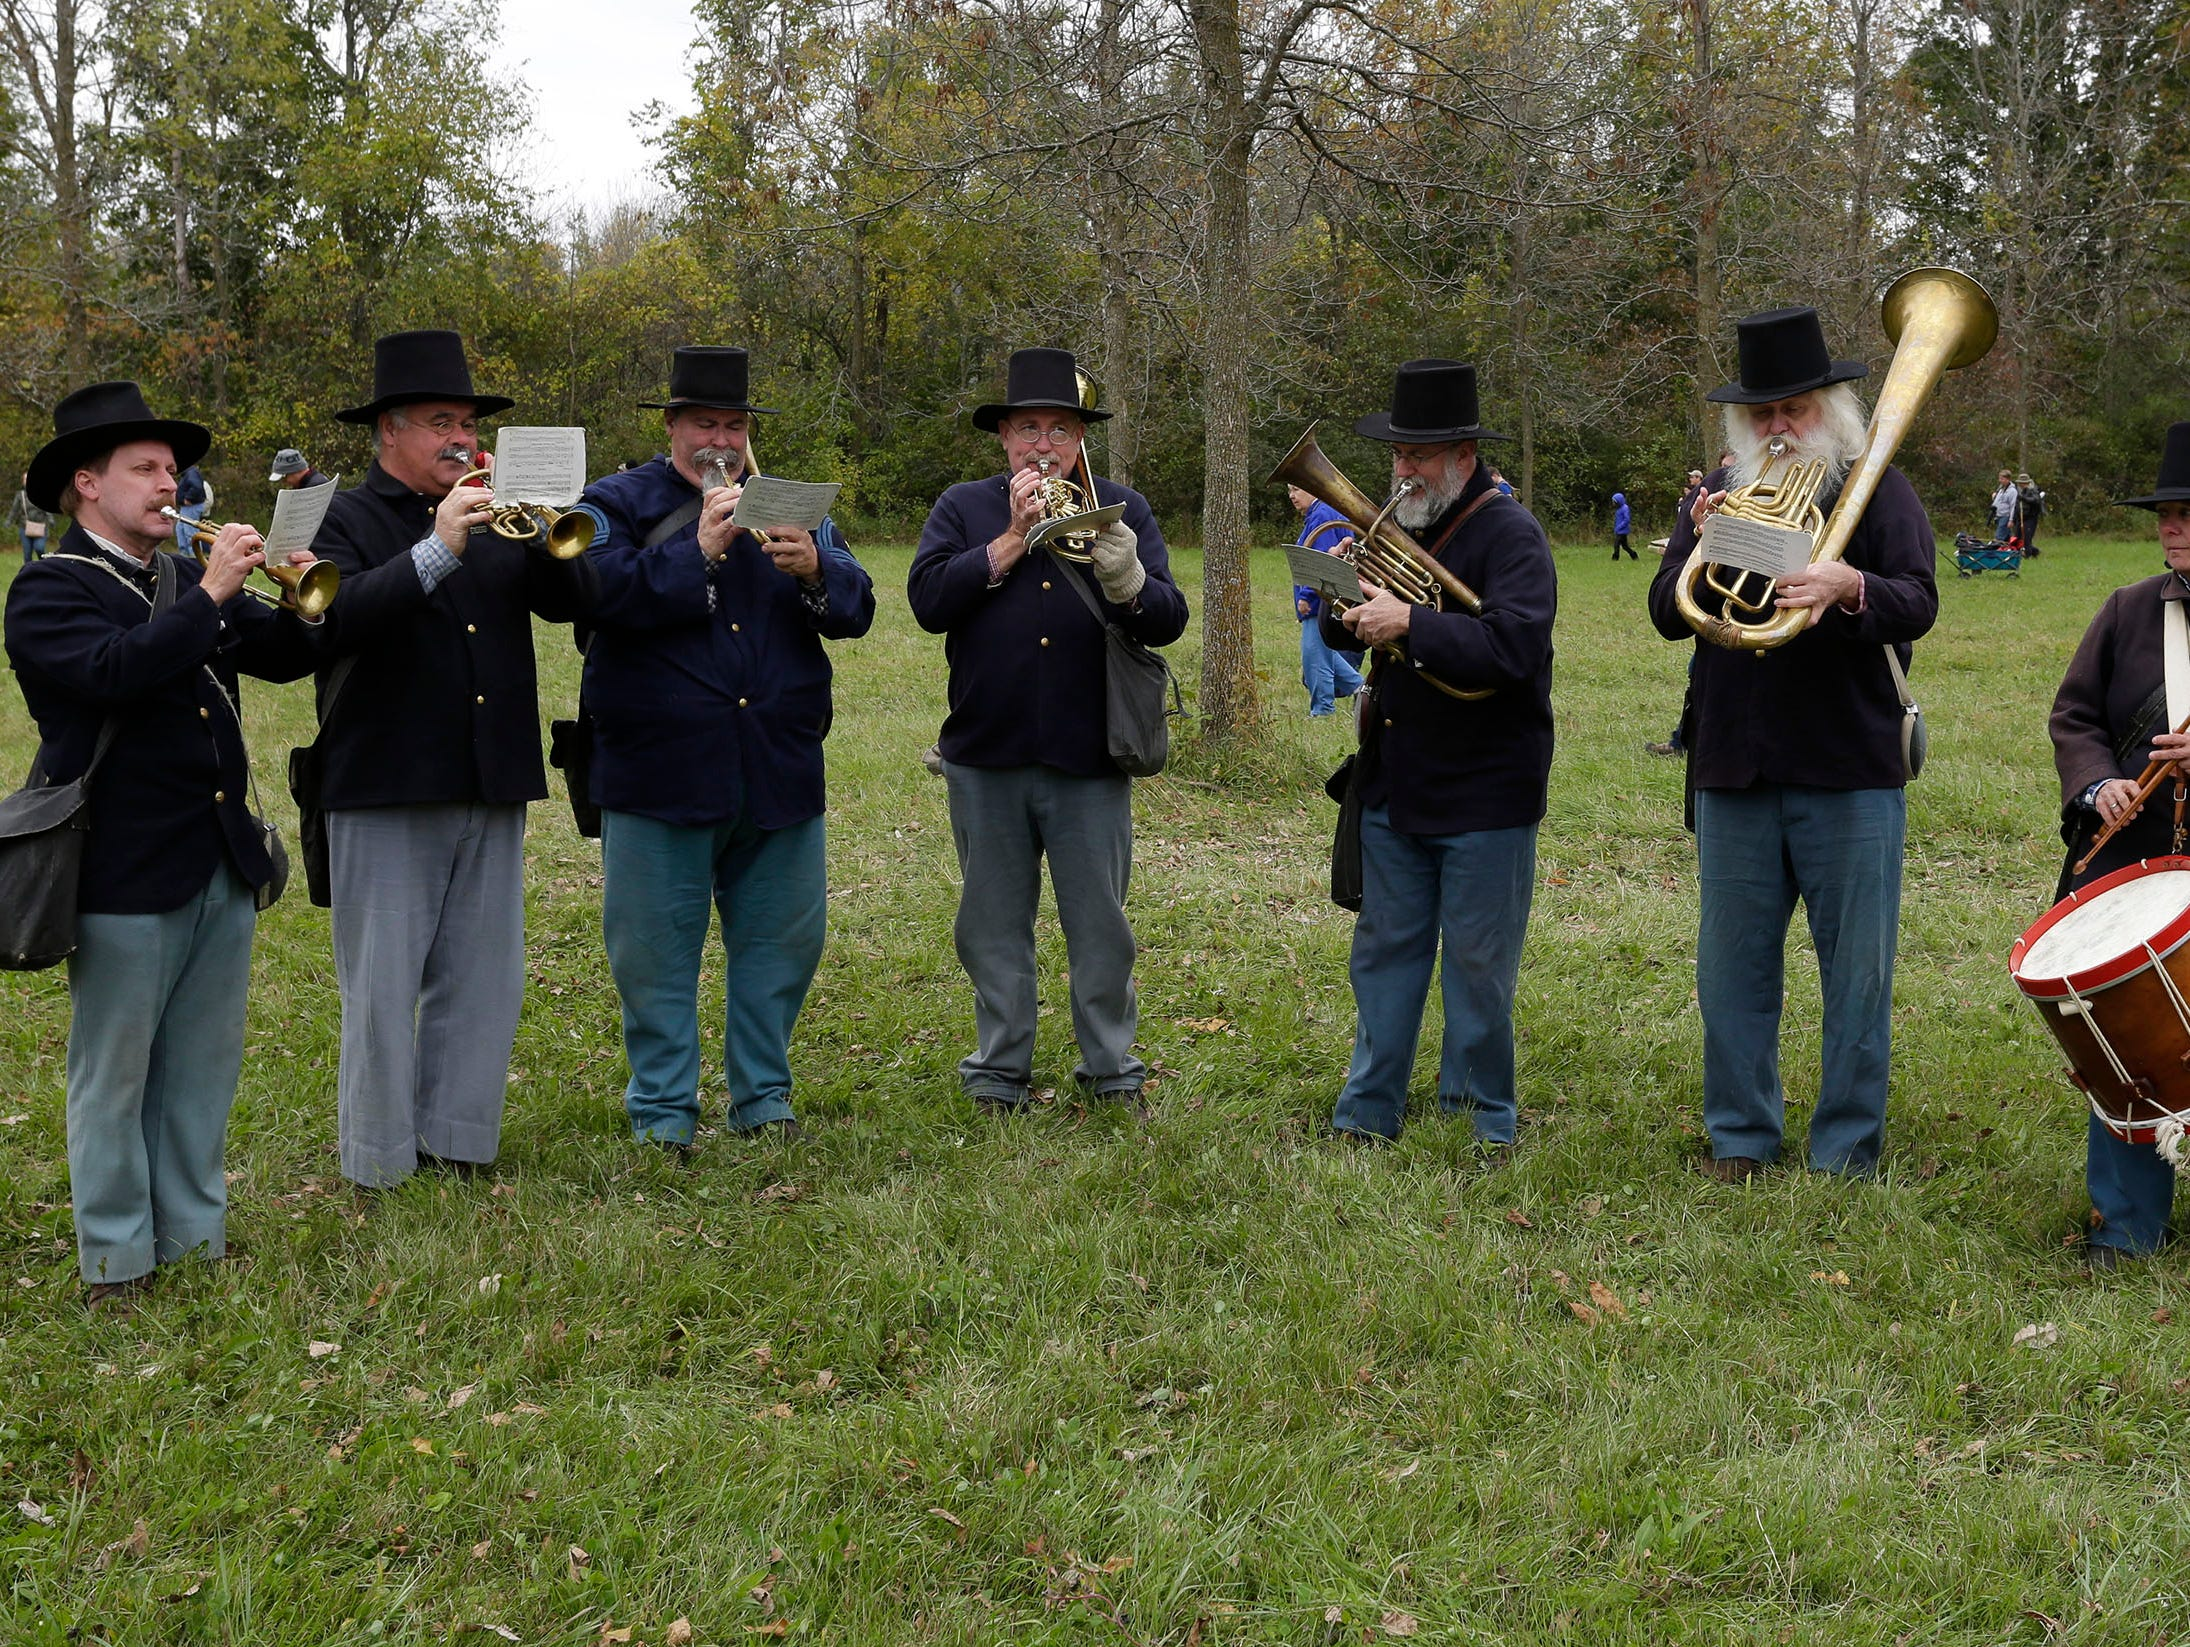 Union soldier band members perform following battle during the Civil War Weekend at the Wade House, Saturday September 29, 2018, in Greenbush, Wis.